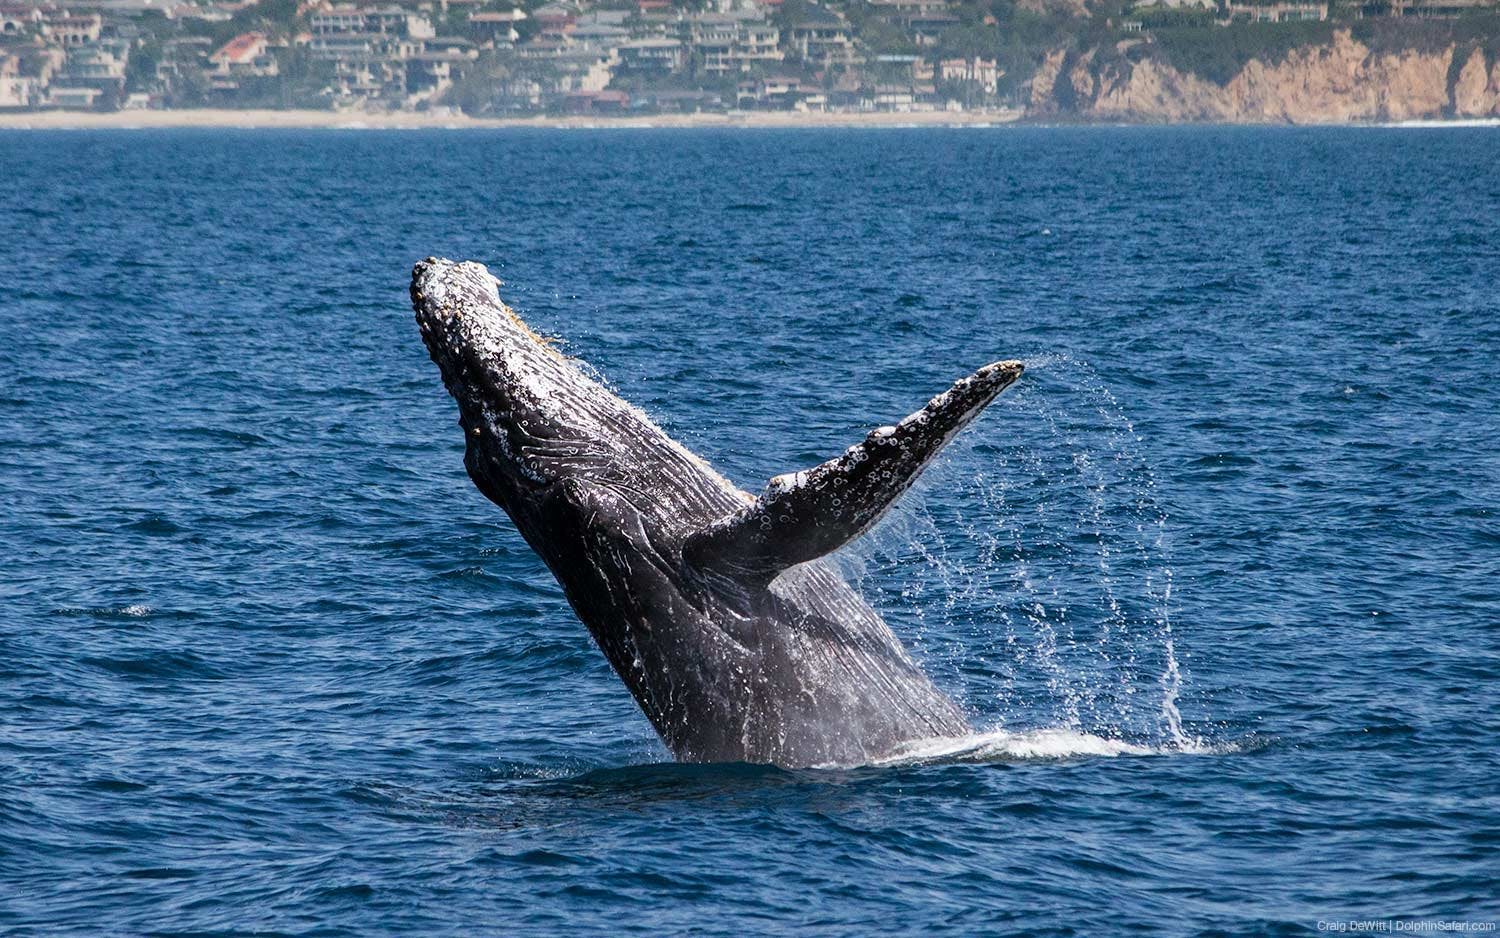 Humpback whale breaching seen during Captain Dave's Dolphin and Whale Watching Safari in Dana Point, California